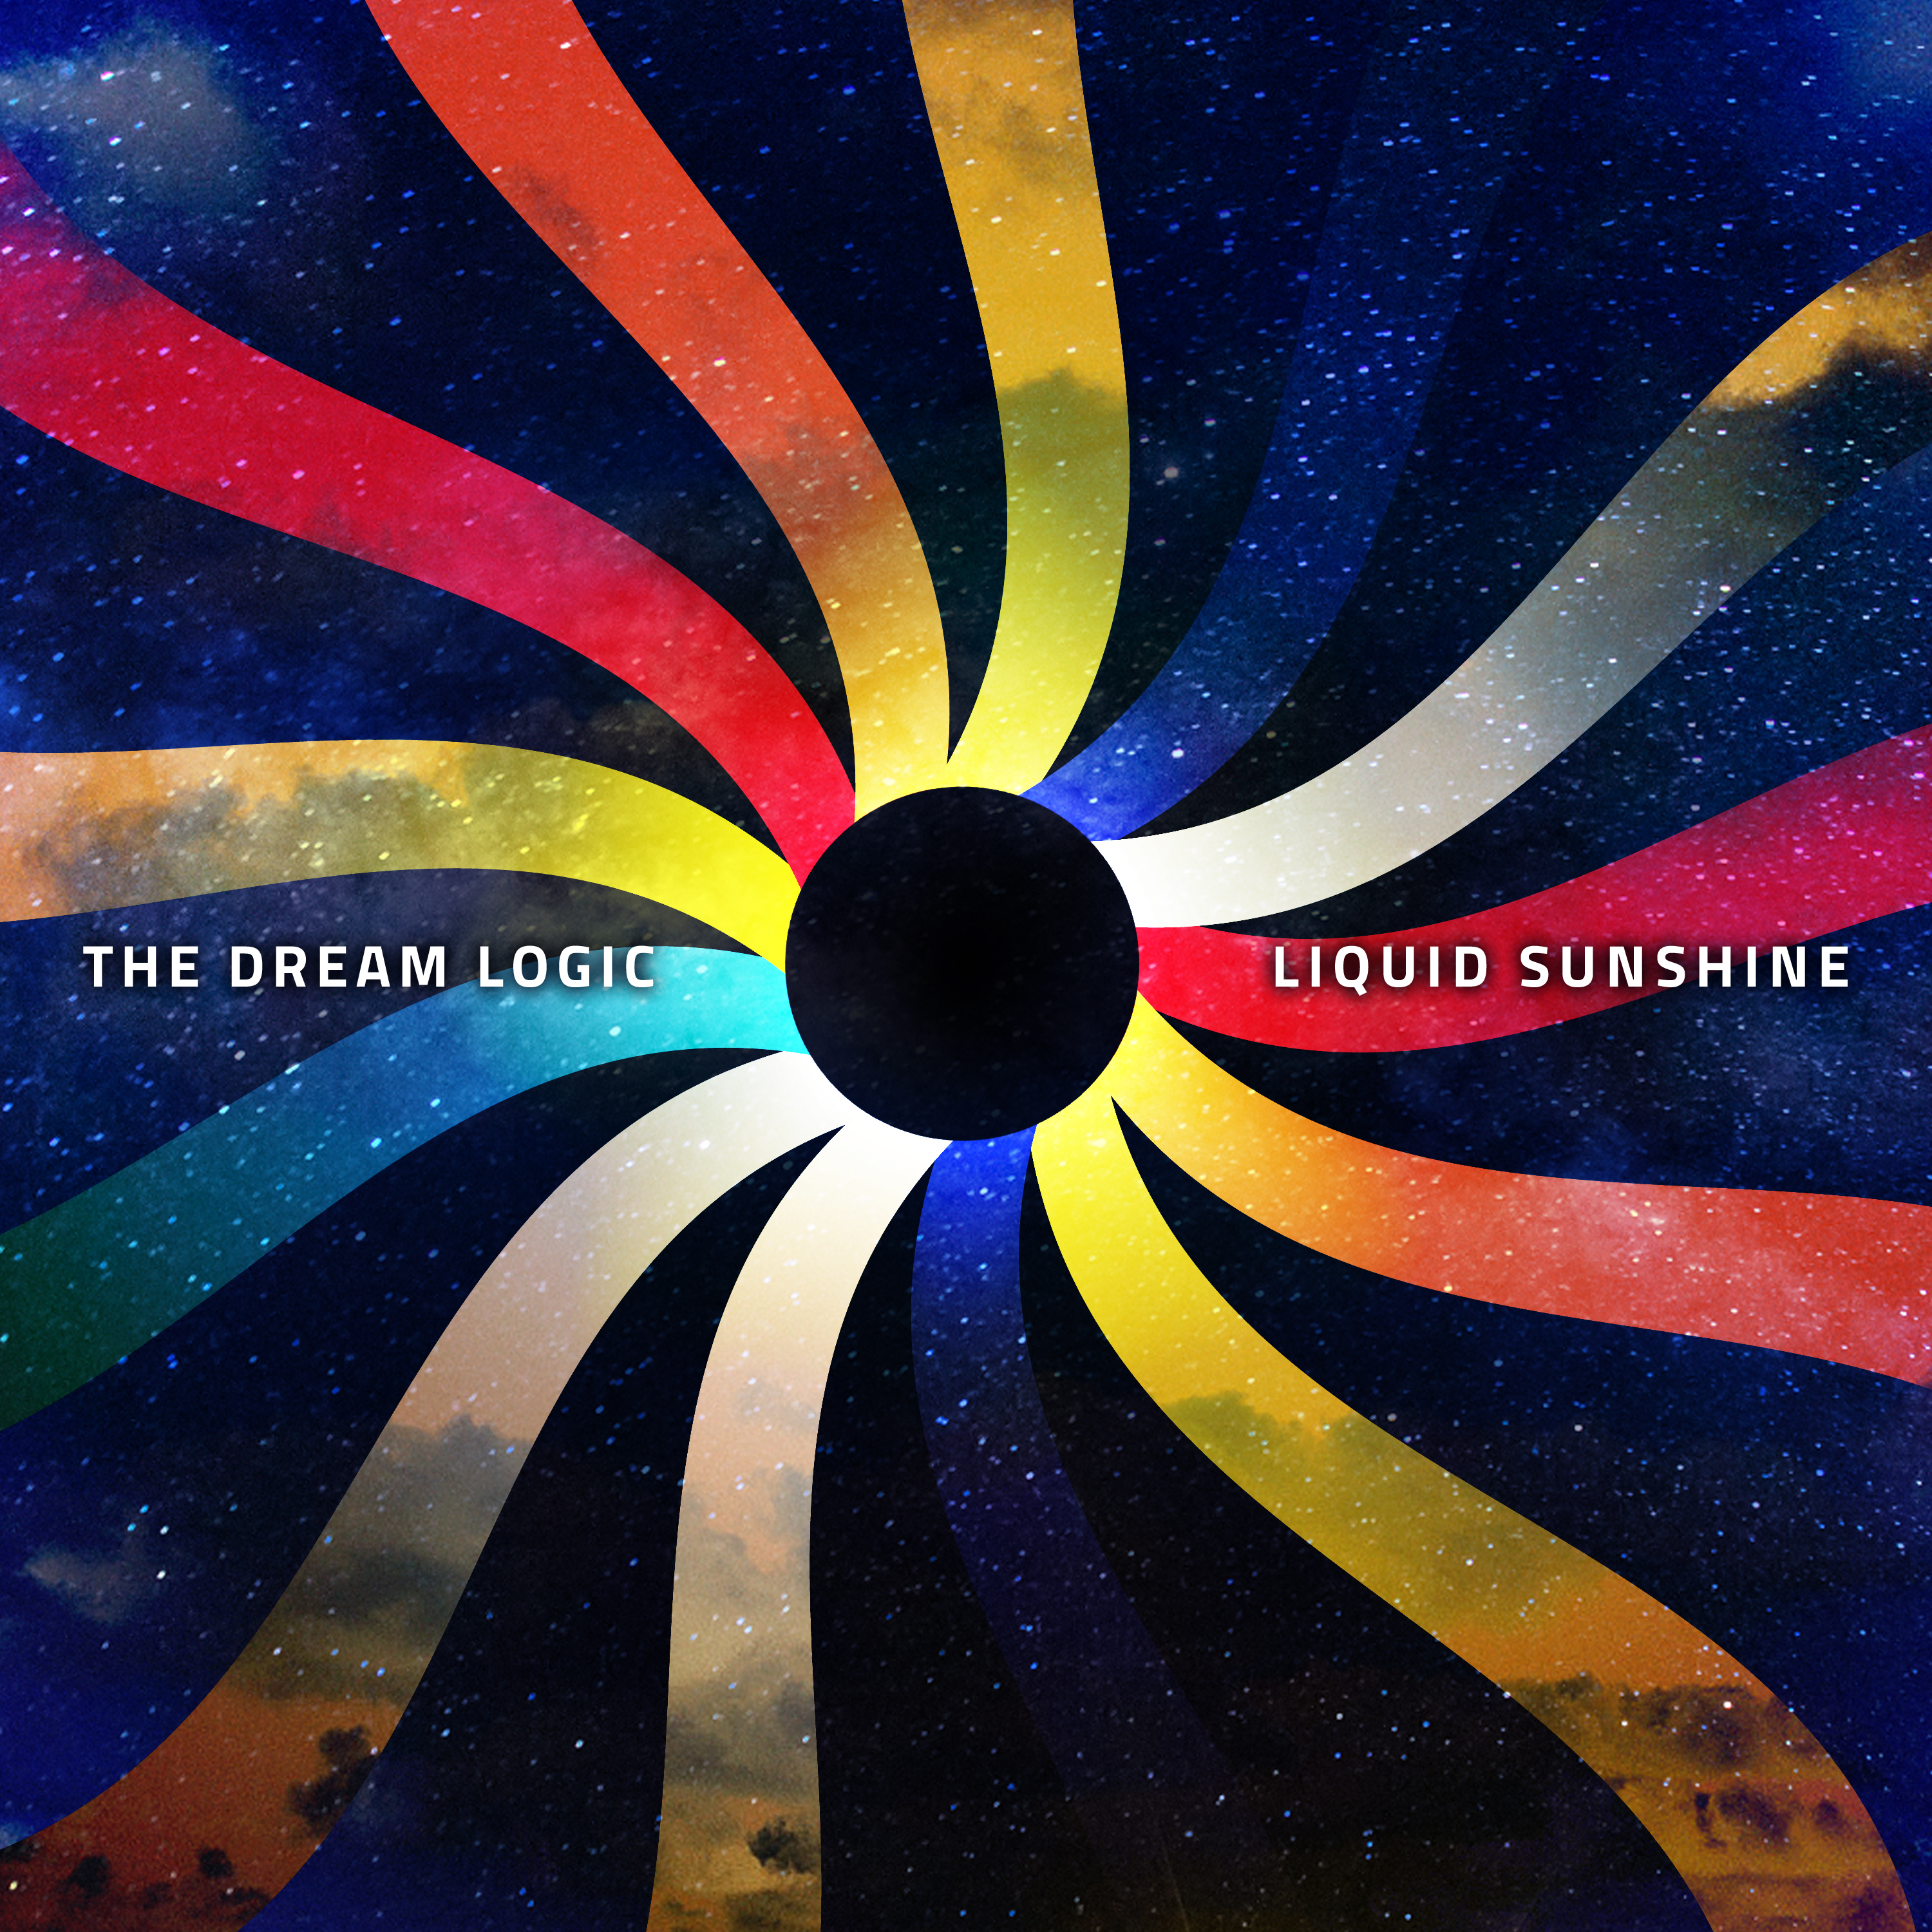 THE DREAM LOGIC RETURN WITH THIRD STUDIO ALBUM